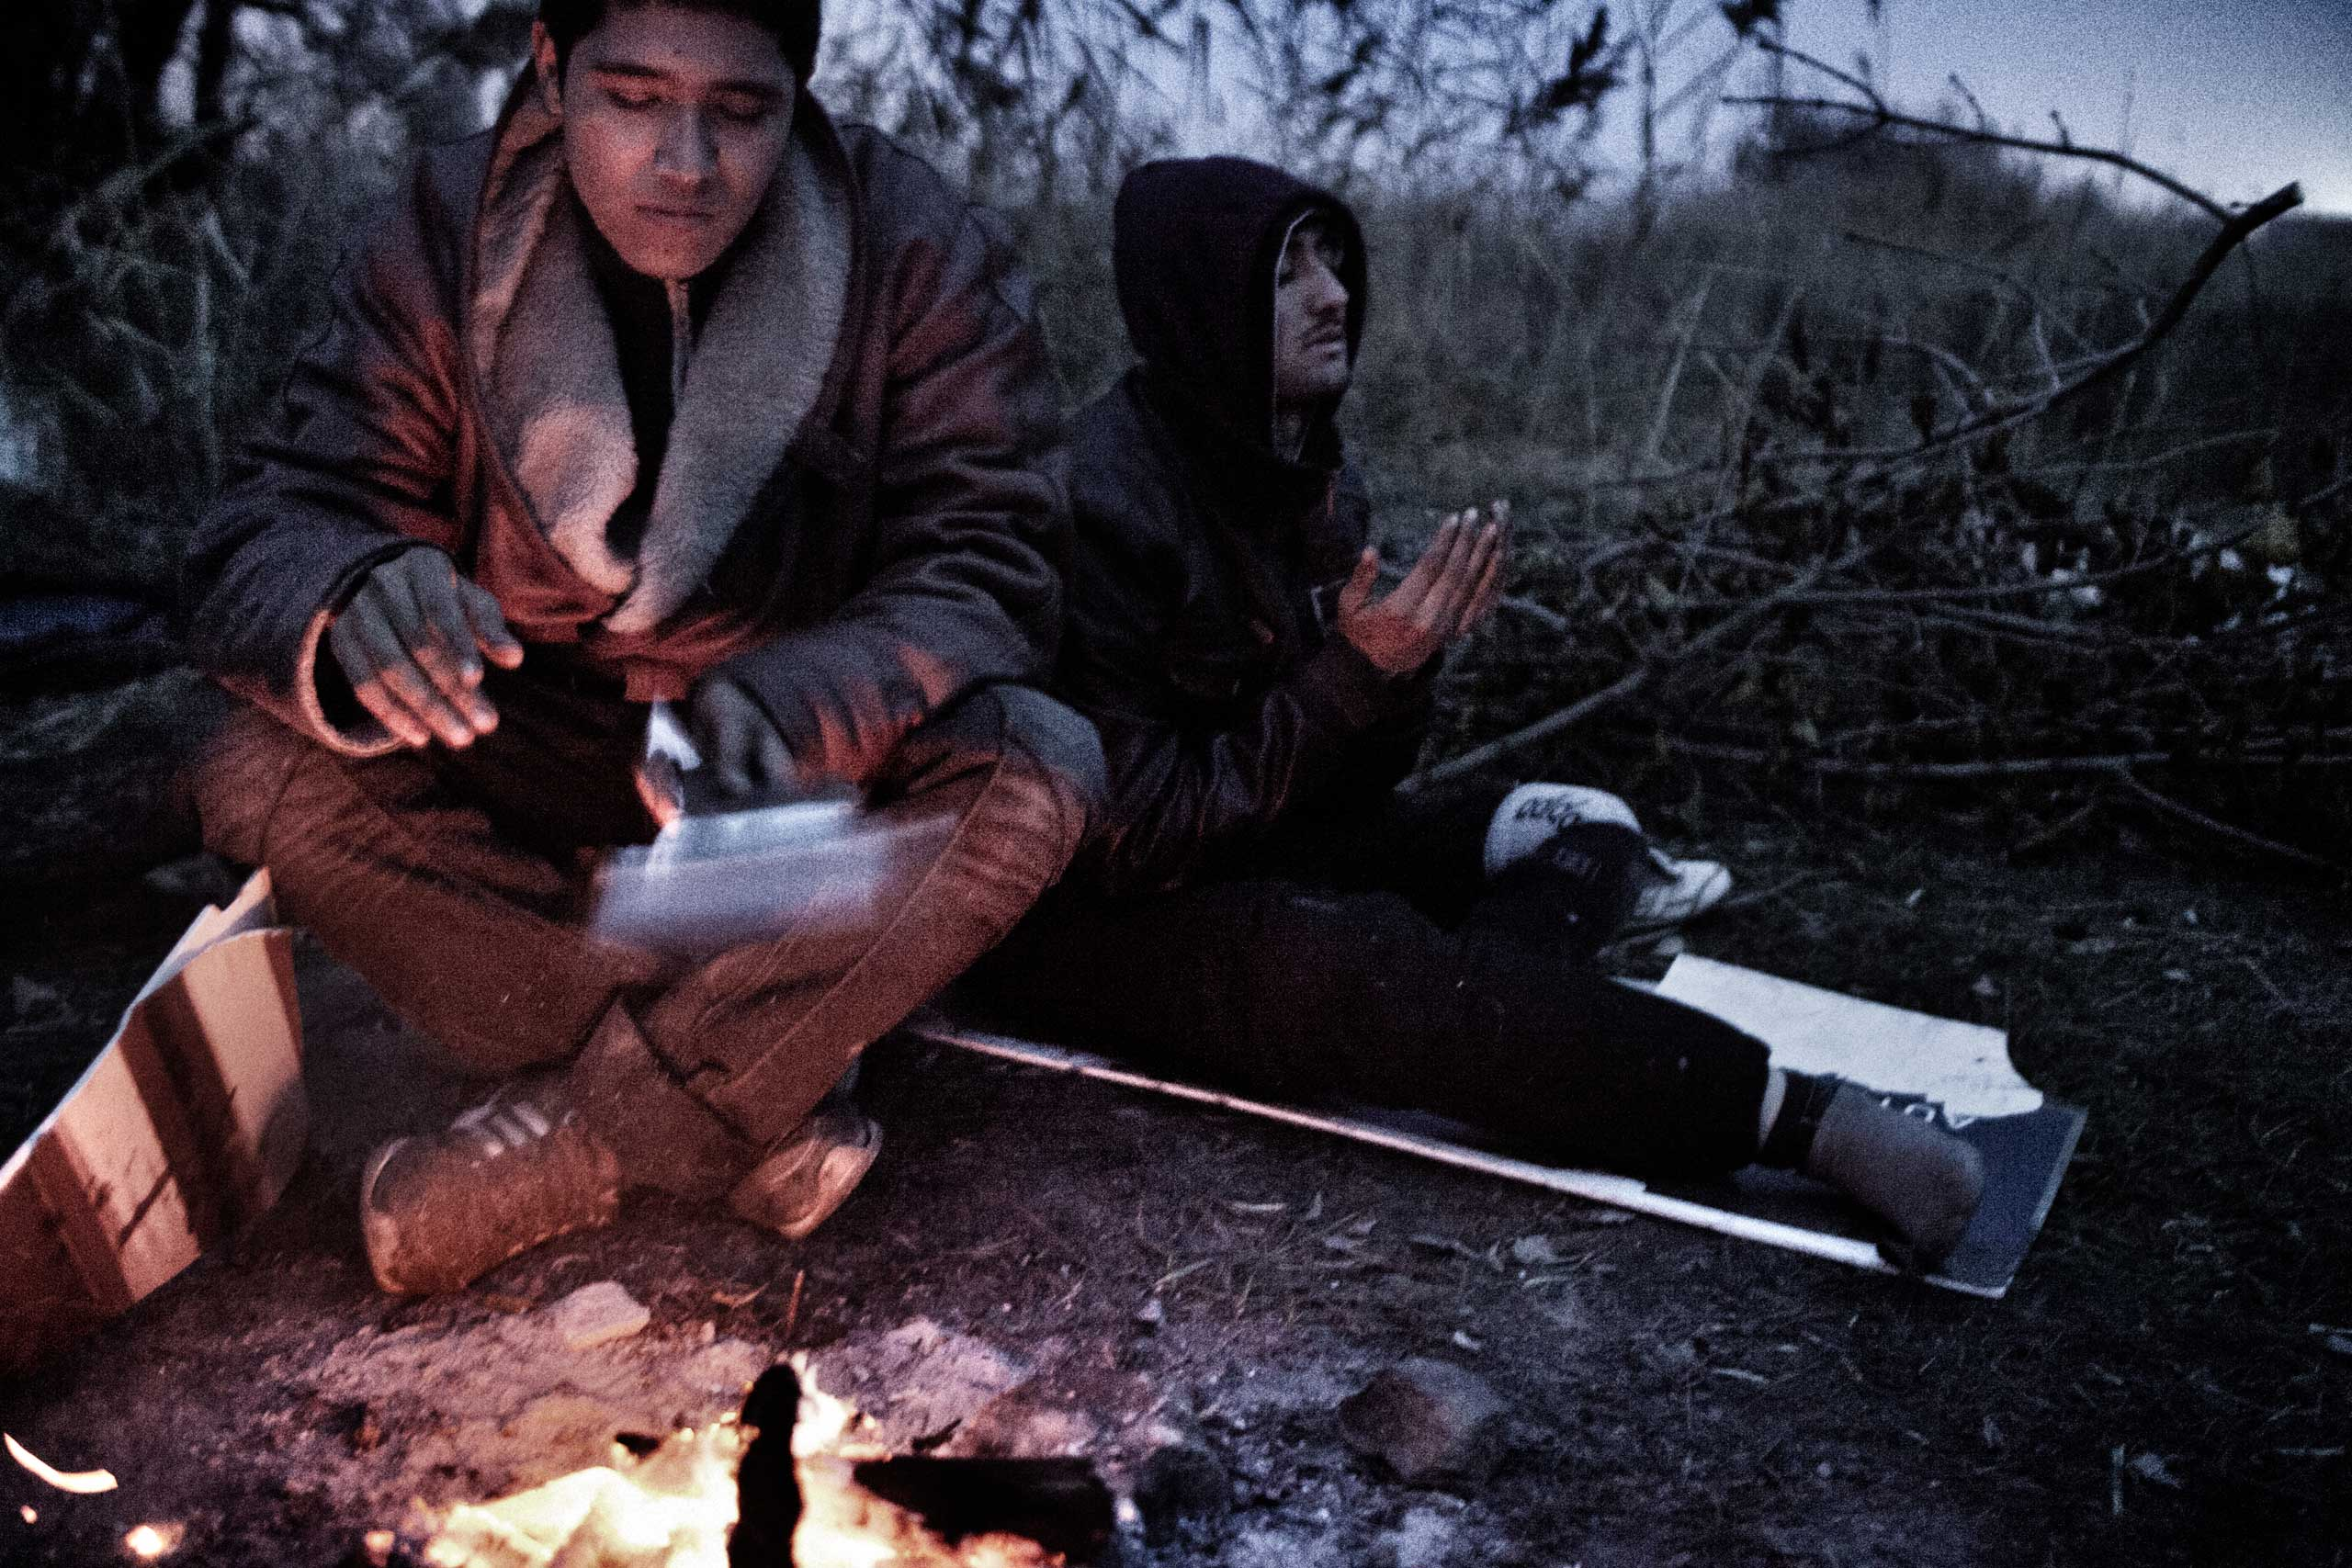 Afghan refugees, Kabir and Zaher, sit by a fire in Subotica, Serbia, Nov. 10, 2012. Zaher, who lost his left leg below the knees, made it to Serbia on crutches. Zaher says he is 16 and Kabir 15. The two were traveling together from Greece. The men lived outdoors in Subotica, waiting for smugglers to give the green light to continue their journey.